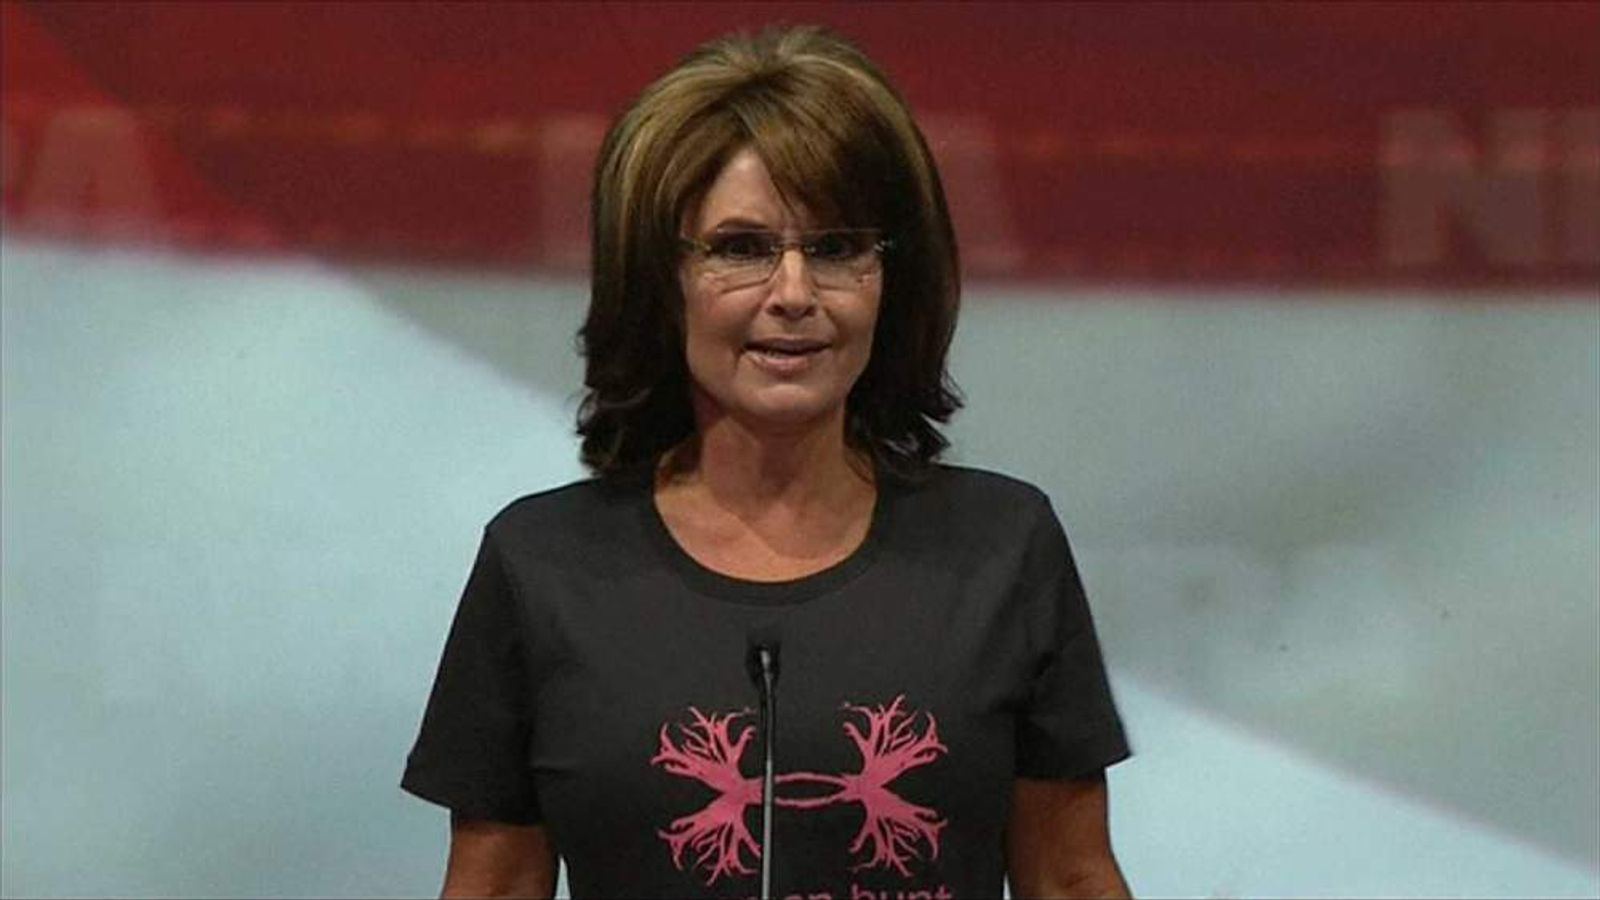 Sarah Palin at the National Rifle Association Convention